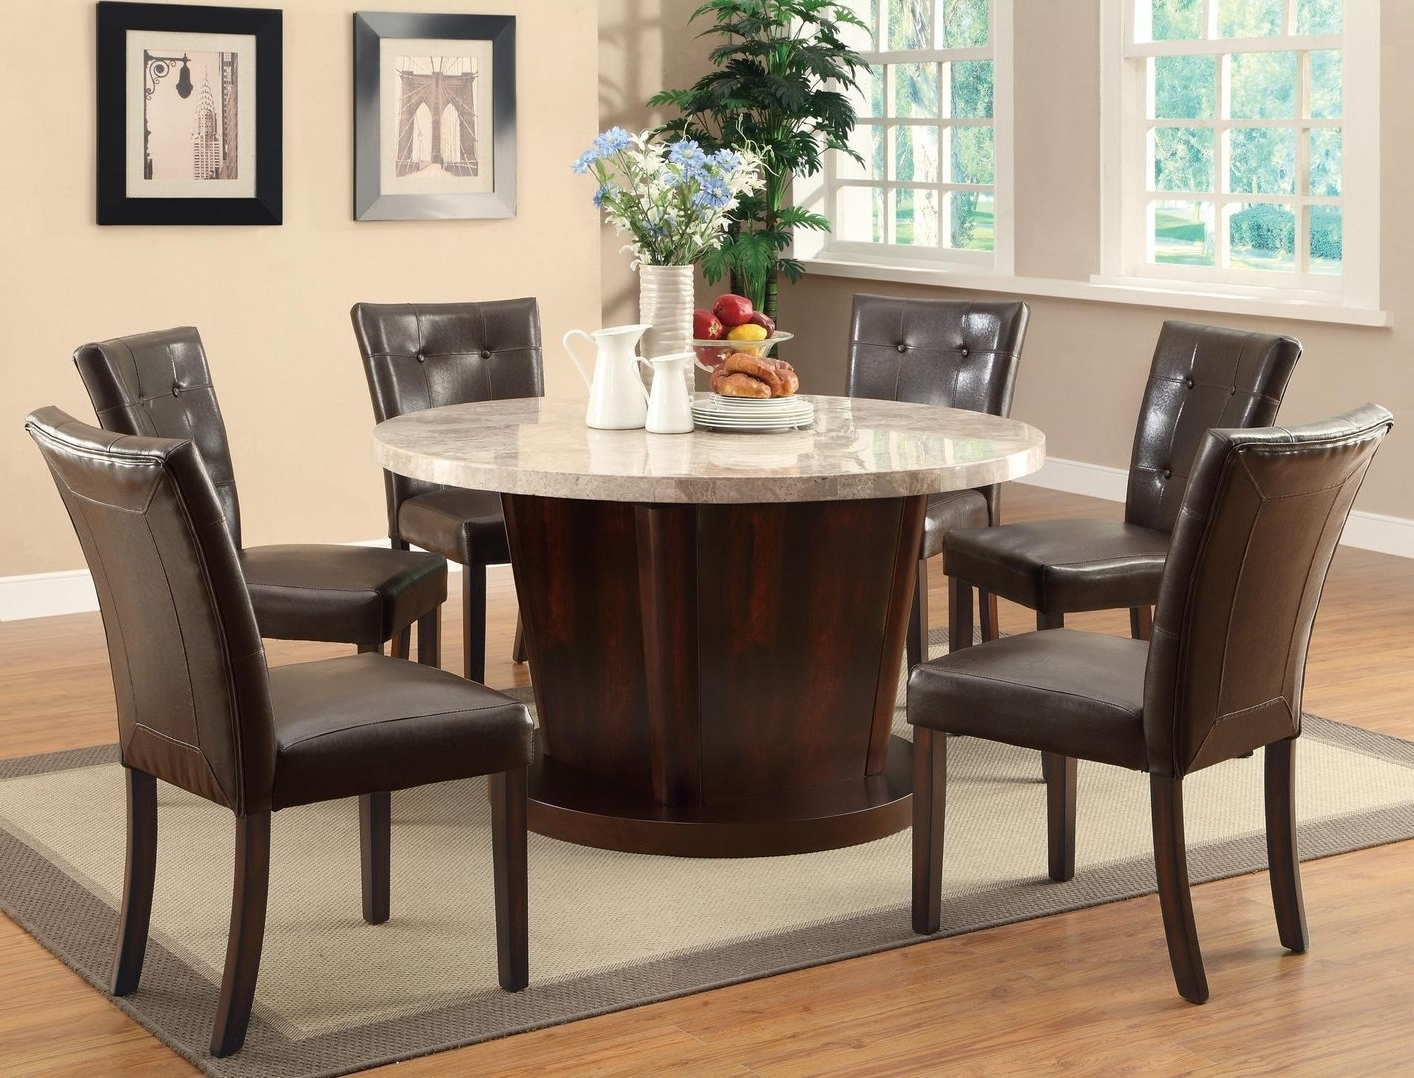 Widely Used Milton Cappuccino Wood And Marble Dining Table – Steal A Sofa Throughout Milton Dining Tables (View 9 of 25)